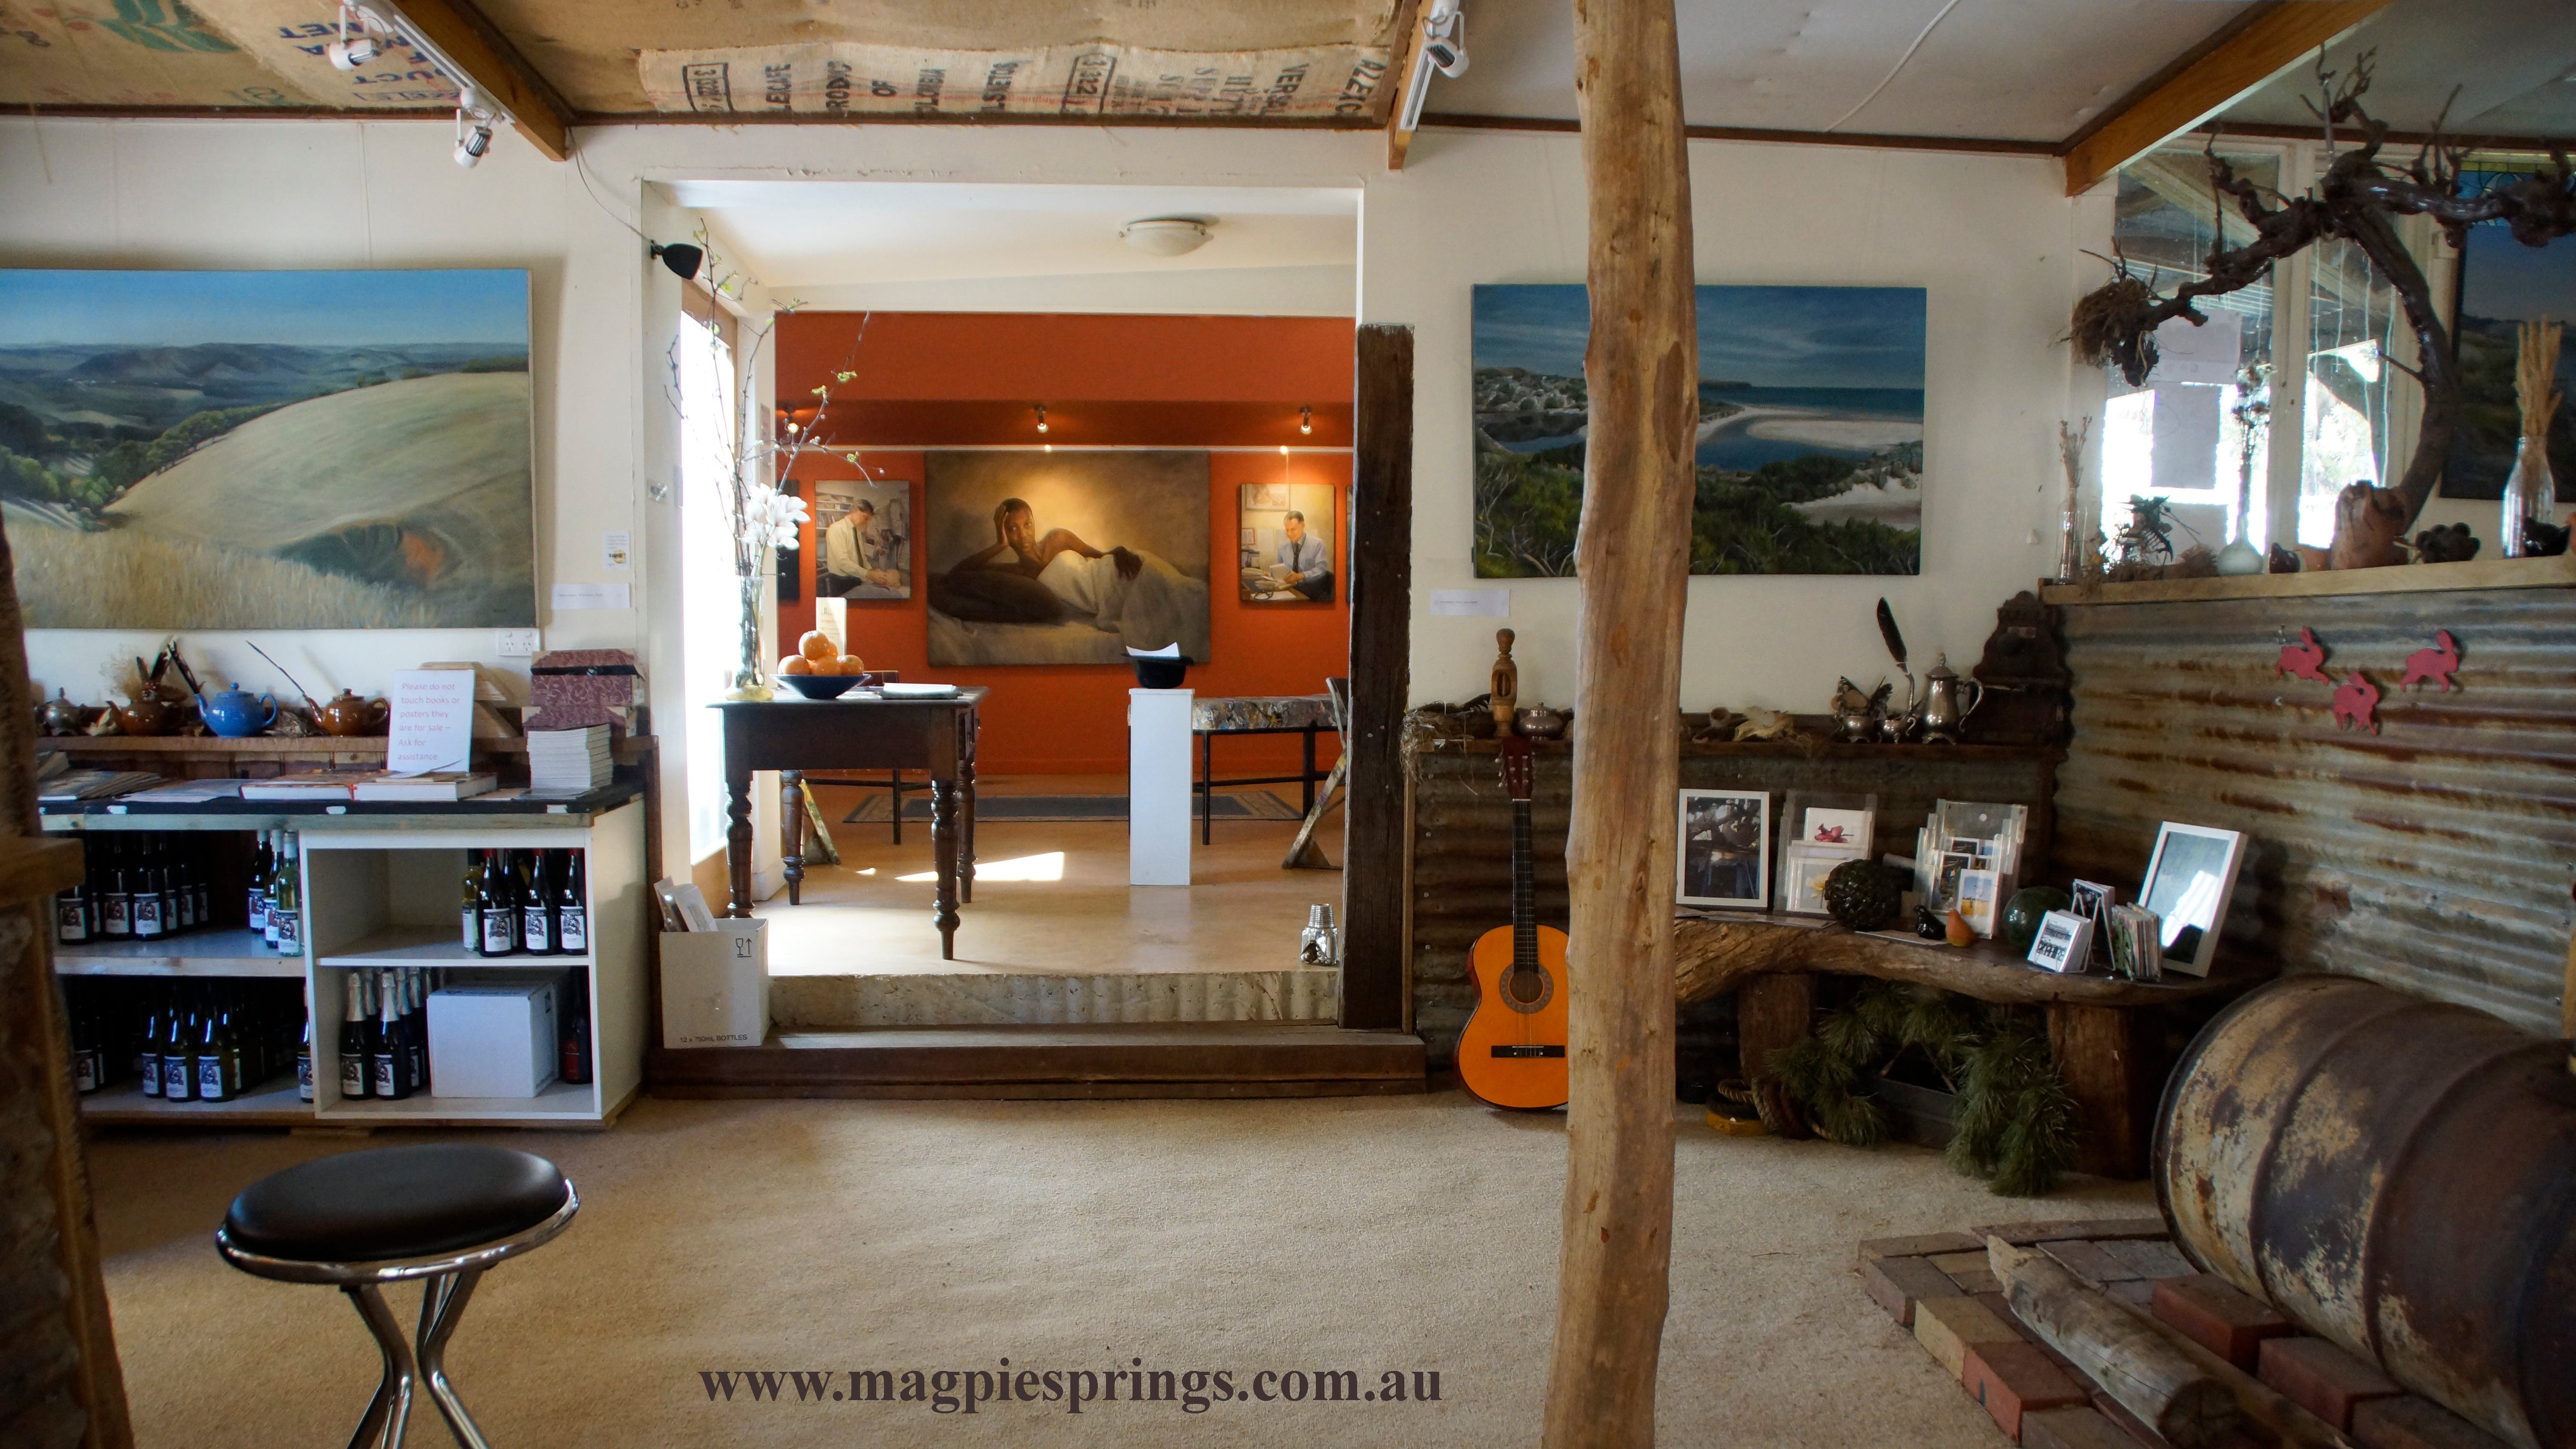 Magpie Springs gallery - Carnarvon Accommodation